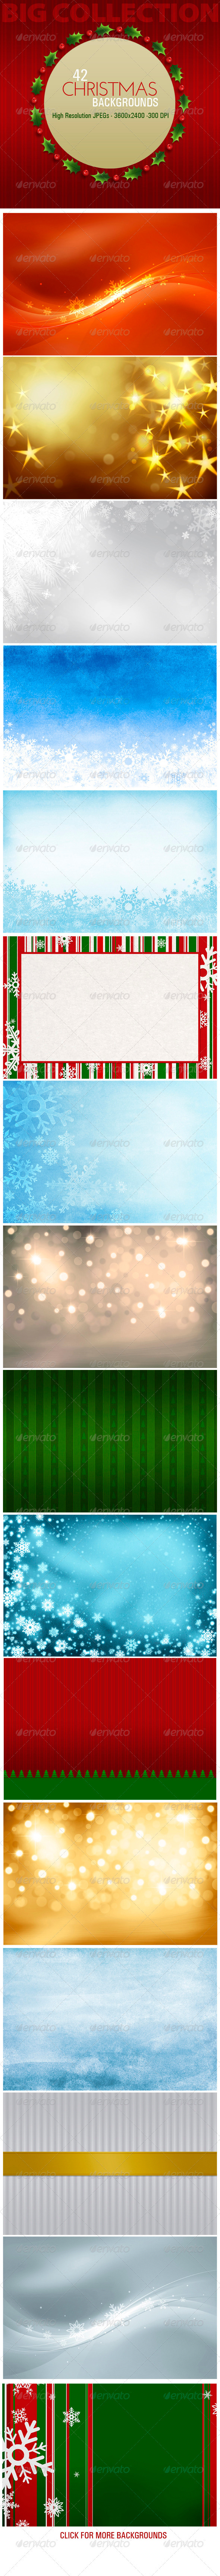 GraphicRiver 42 Christmas Backgrounds 3296257